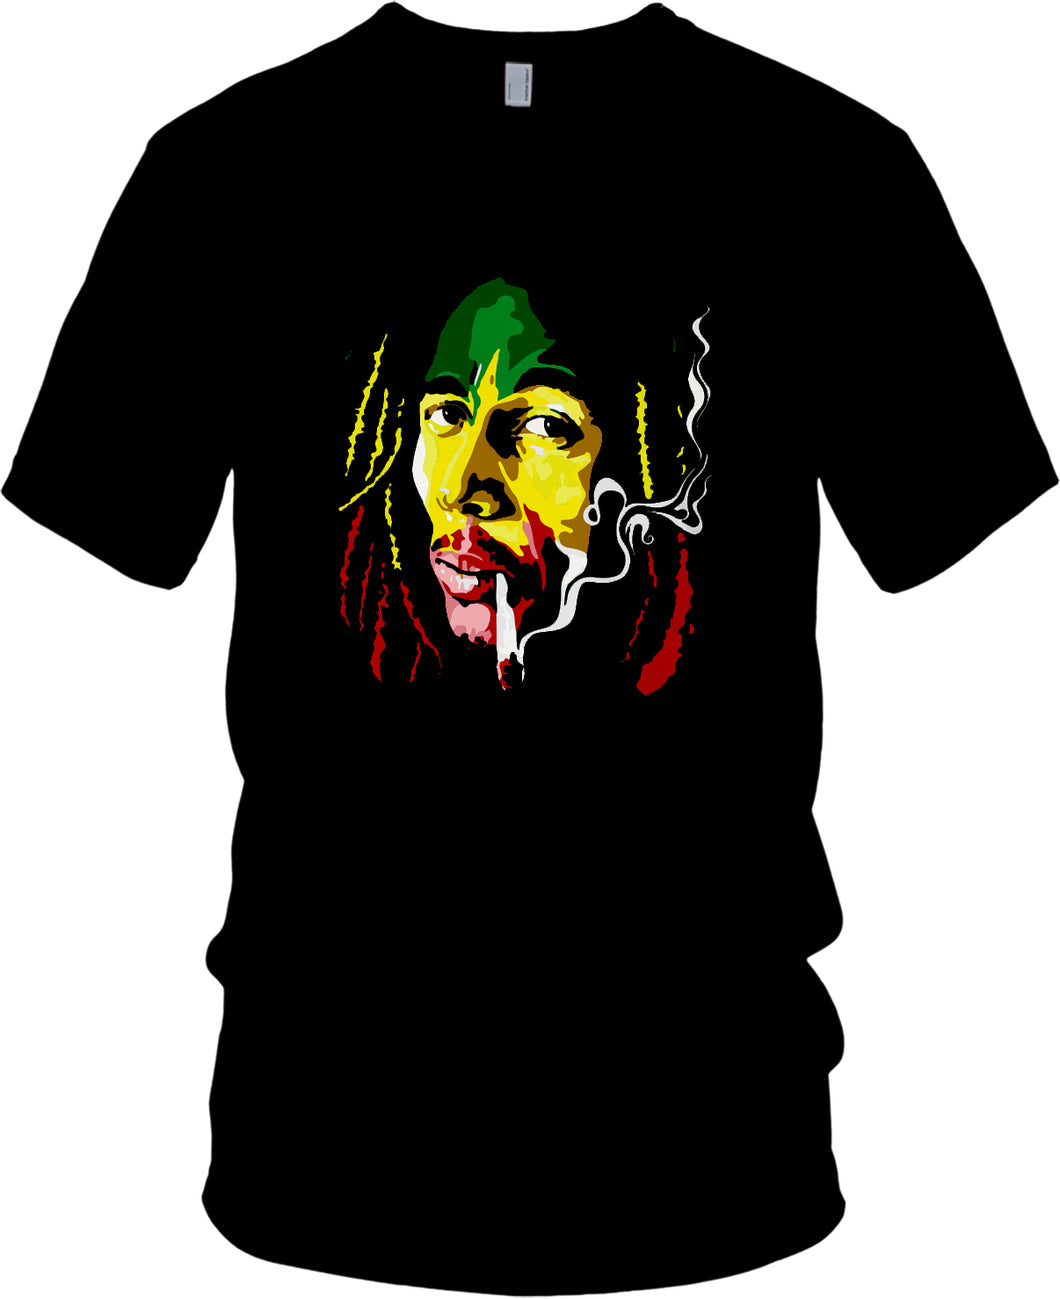 MILLIONAIRE MENTALITY BOB MARLEY BLACK T-SHIRT (LIMITED EDITION)